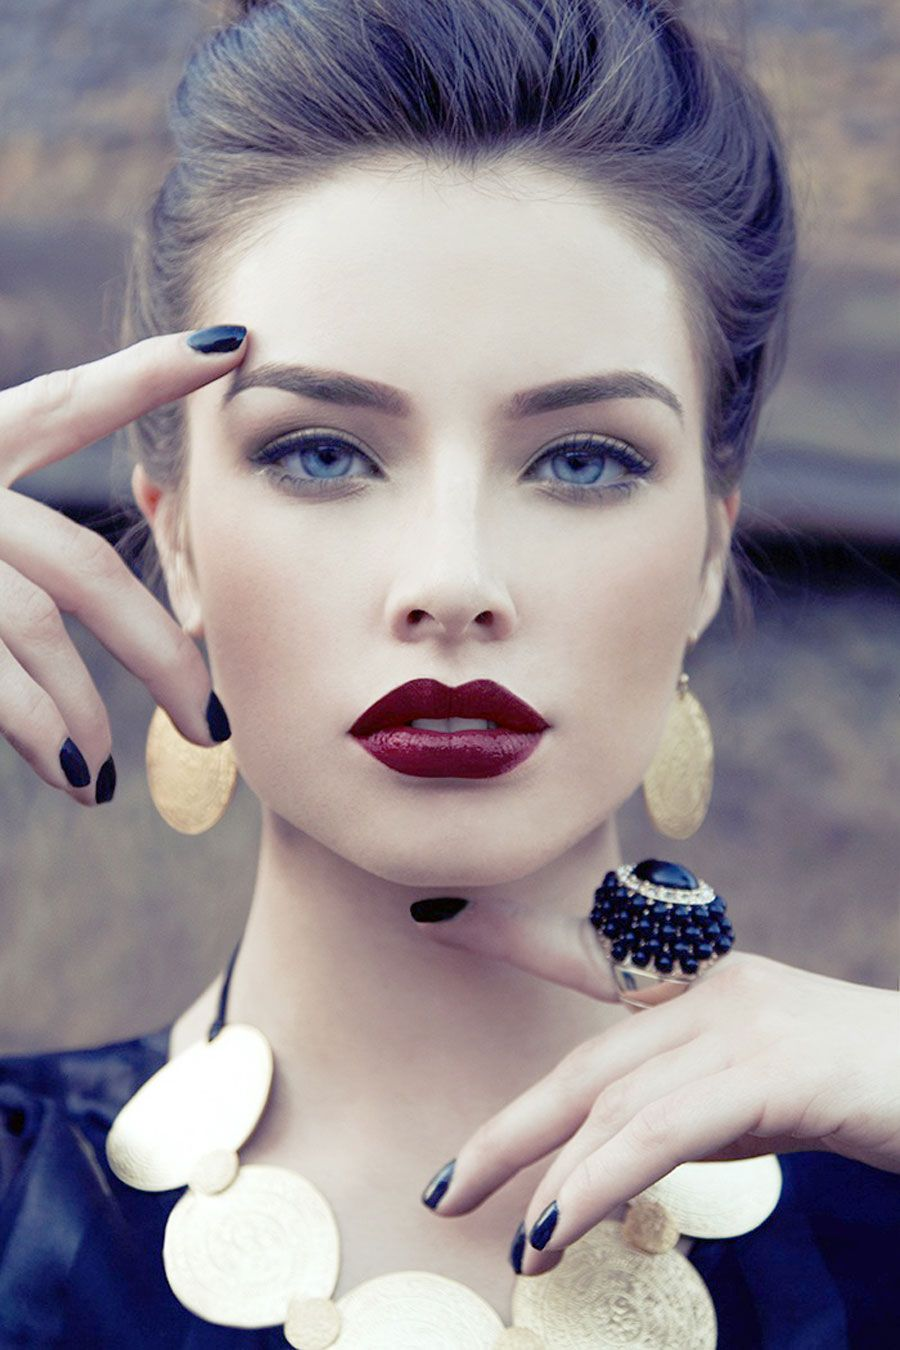 Stunning deep red lipstick | HAIR & BEAUTY | Pinterest ...